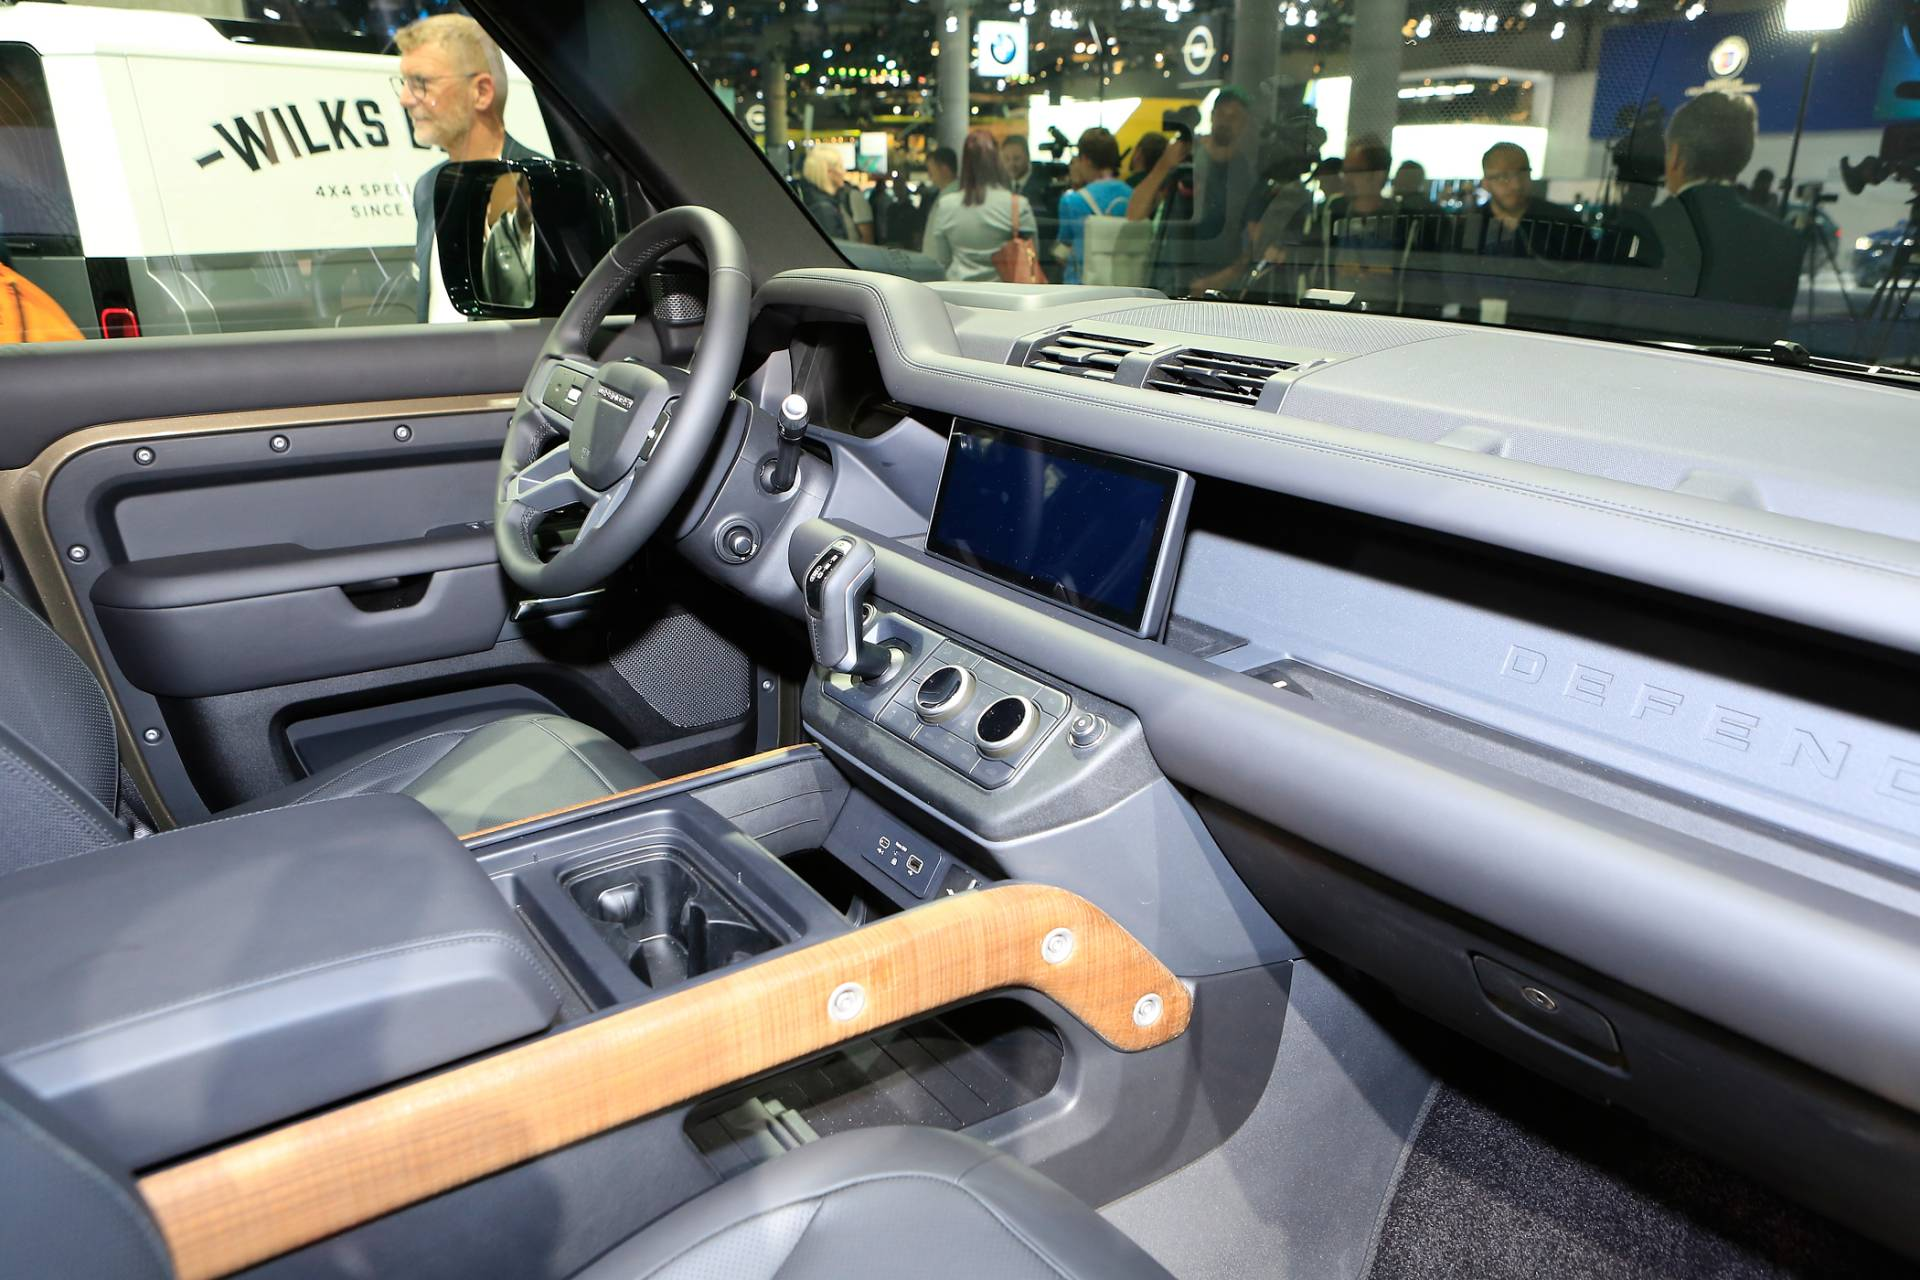 40284e45-2020-land-rover-defender-110-at-2019-frankfurt-motor-show-45.jpg